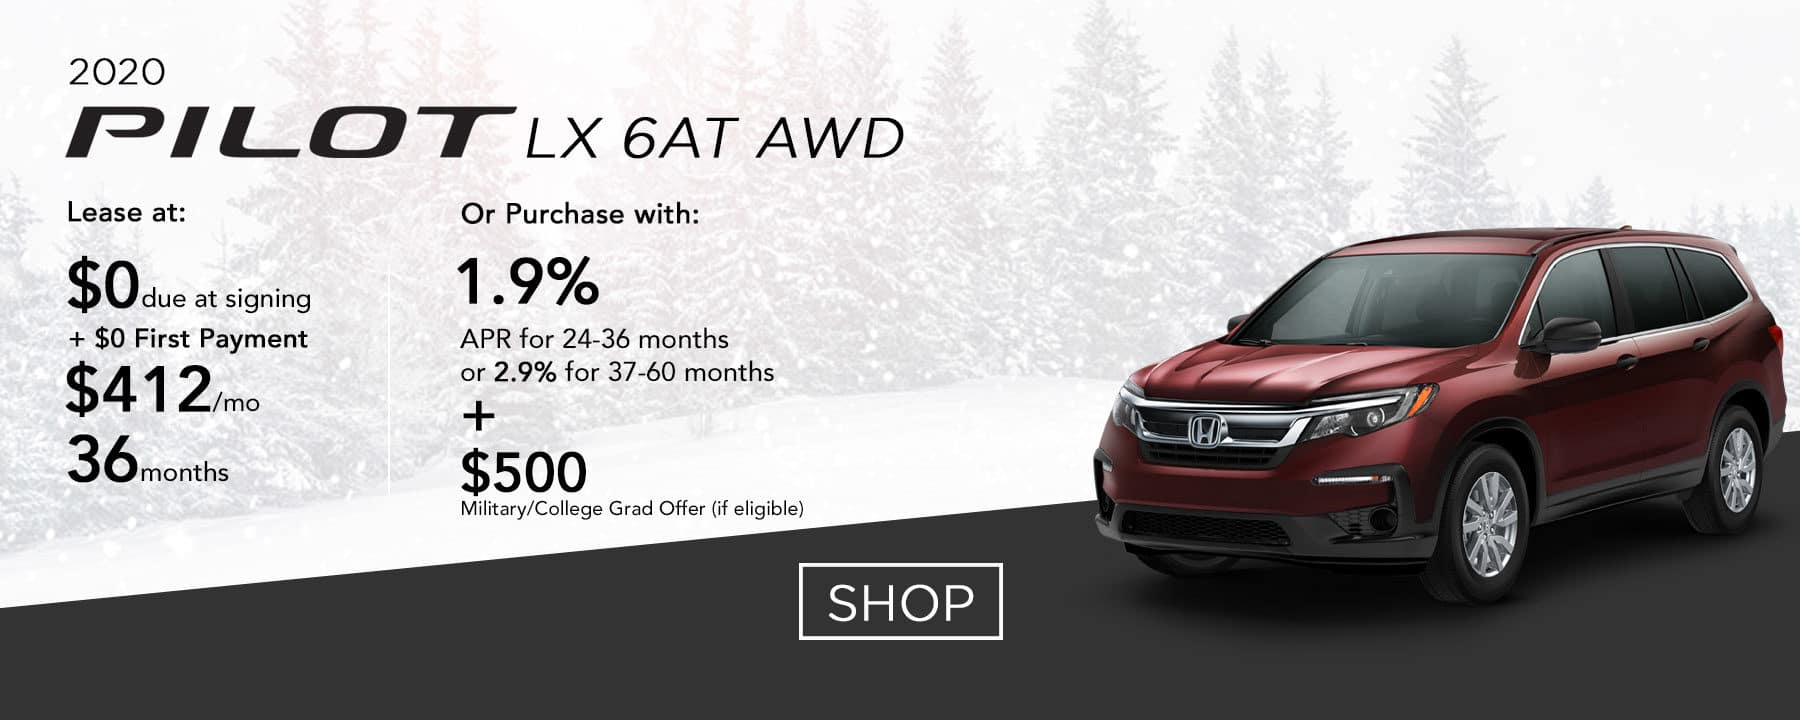 Lease a 2020 Pilot LX 6AT AWD for $412 per month or purchase with 1.9% APR up to 36 months